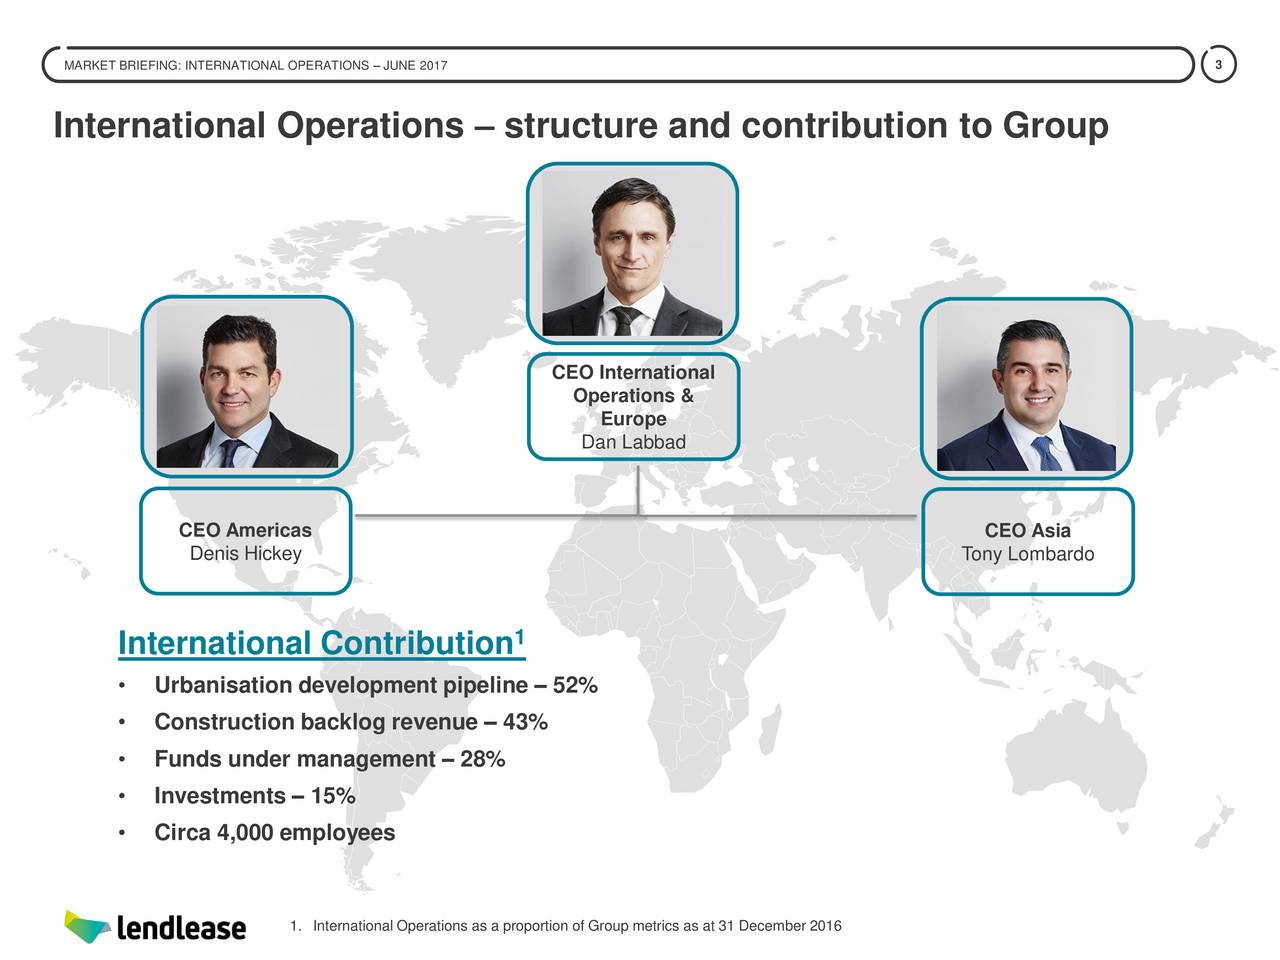 International Operations  structure and contribution to Group CEO International Operations & Europe Dan Labbad CEO Americas CEO Asia Denis Hickey Tony Lombardo 1 International Contribution Urbanisation development pipeline  52% Construction backlog revenue  43% Funds under management  28% Investments  15% Circa 4,000 employees 1. International Operations as a proportion of Group metrics as at 31 December 2016